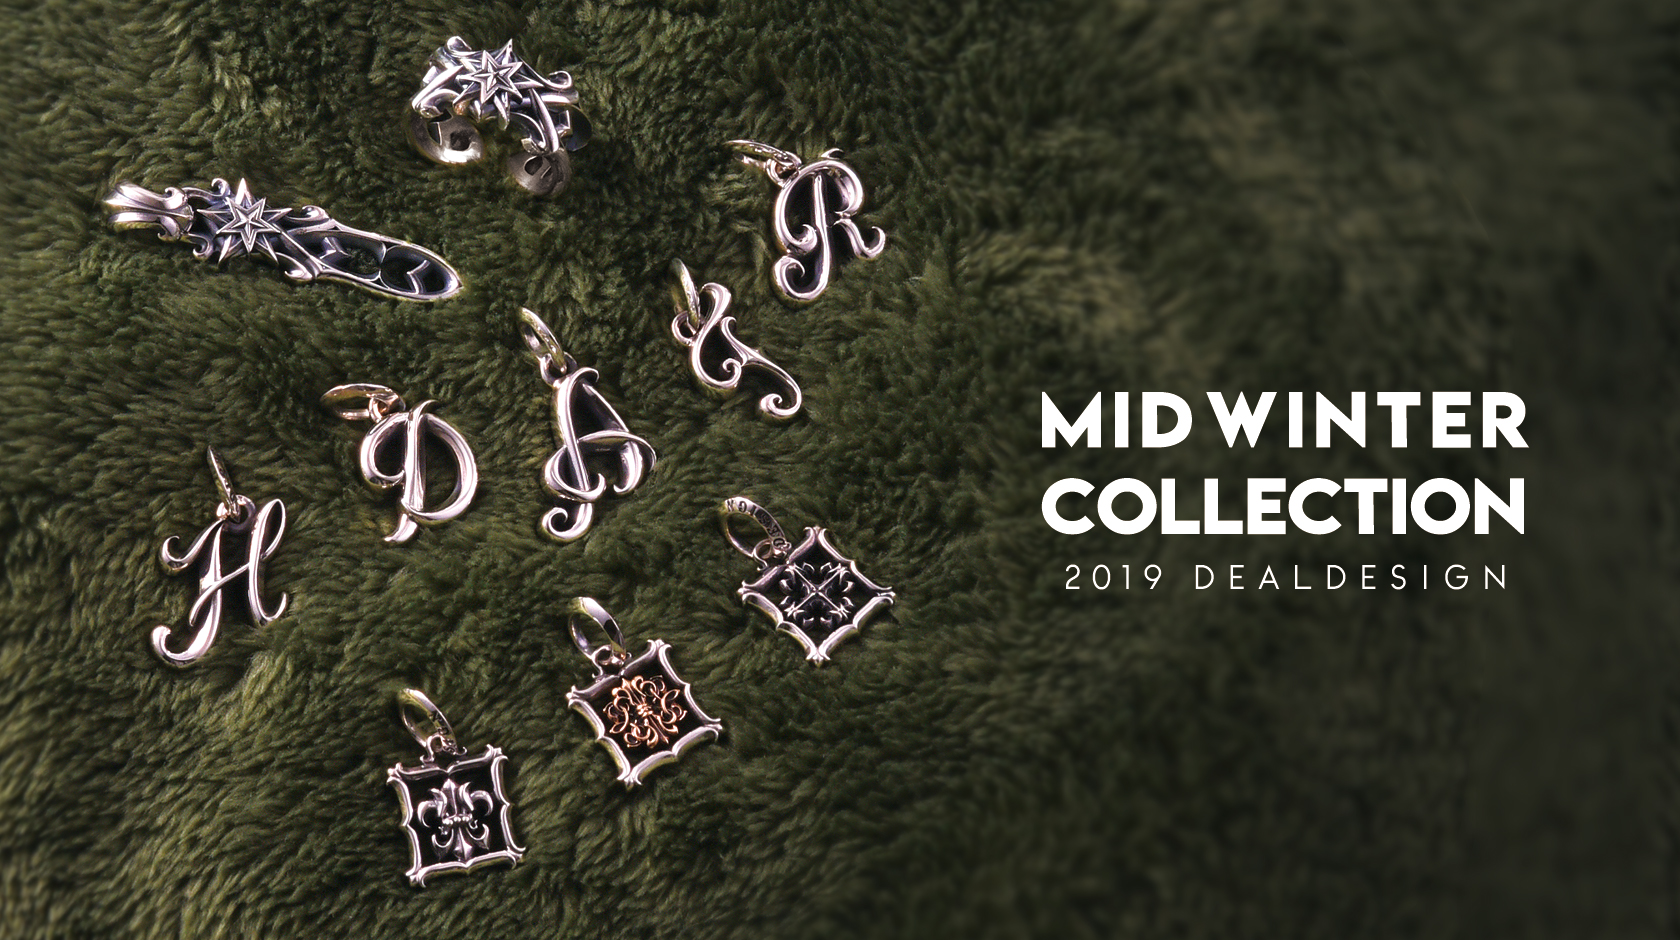 2019 MIDWINTER COLLECTION